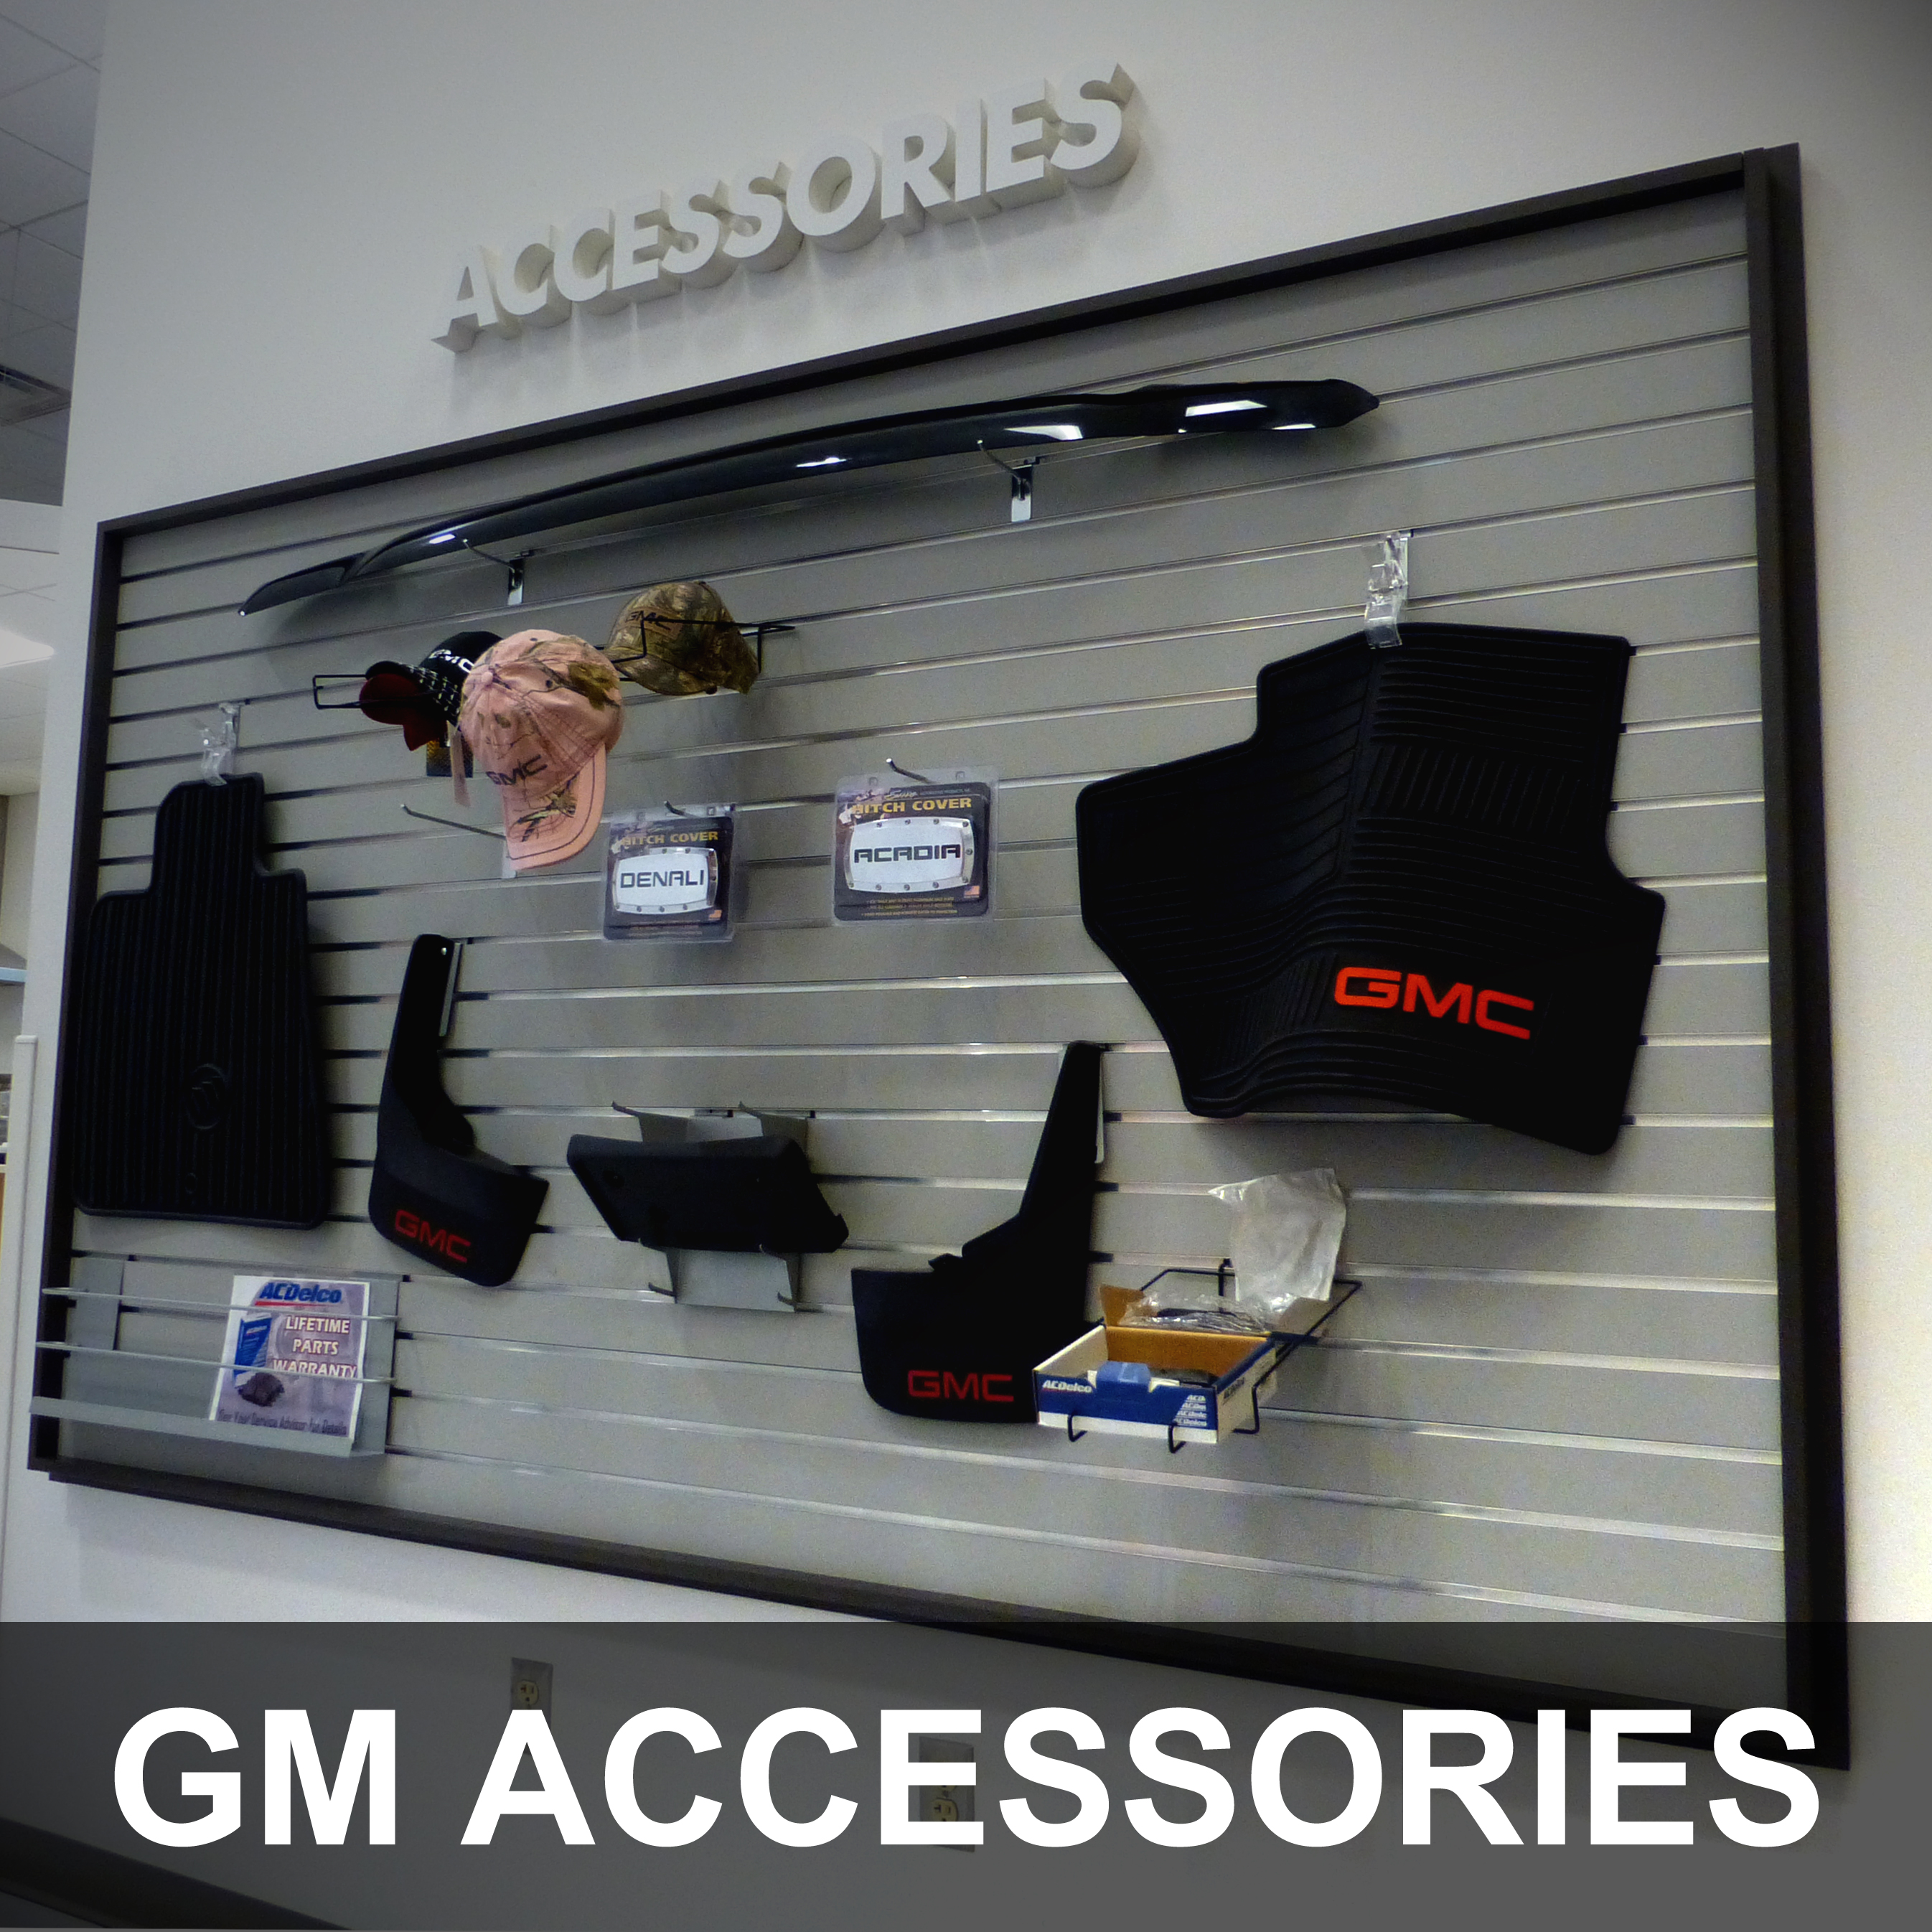 GM Accessories at Dave Arbogast